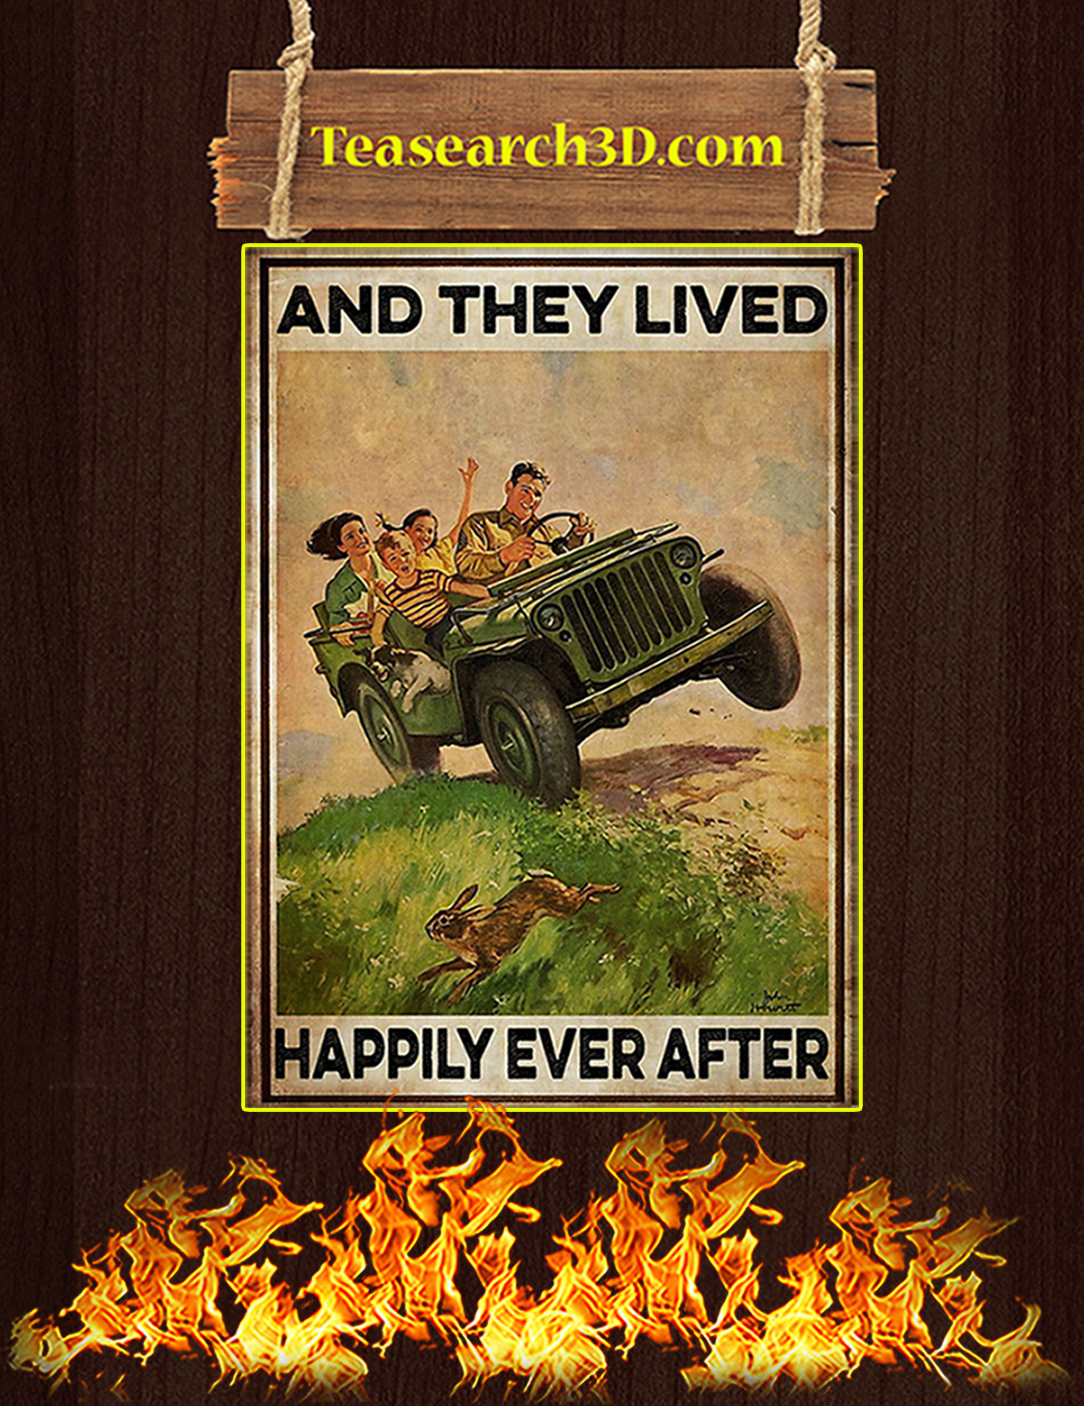 Jeep and they lived happily ever after poster A2